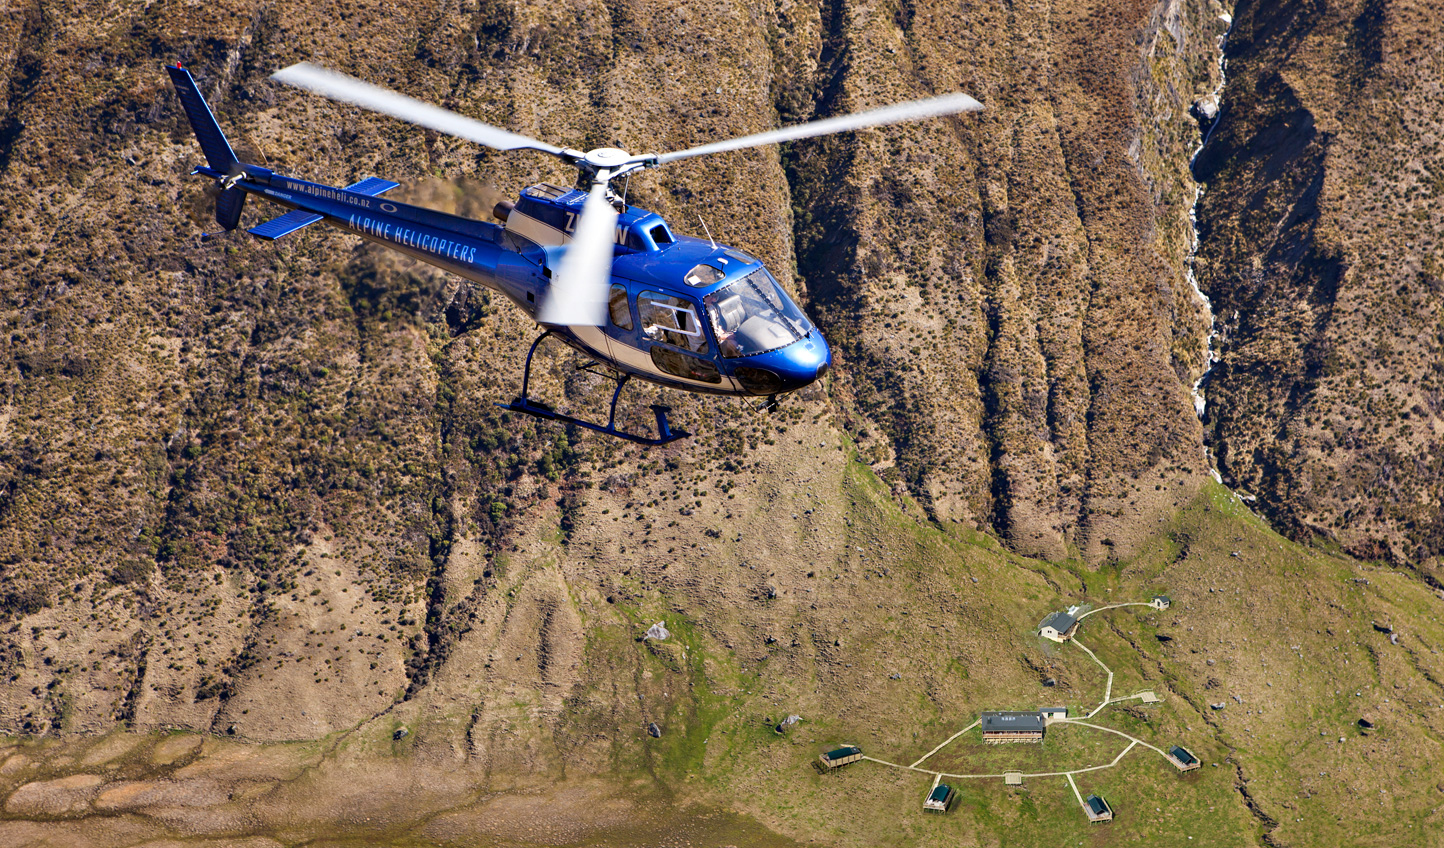 Your private helicopter will wisk you off to untouched trails ready to tear up downhill